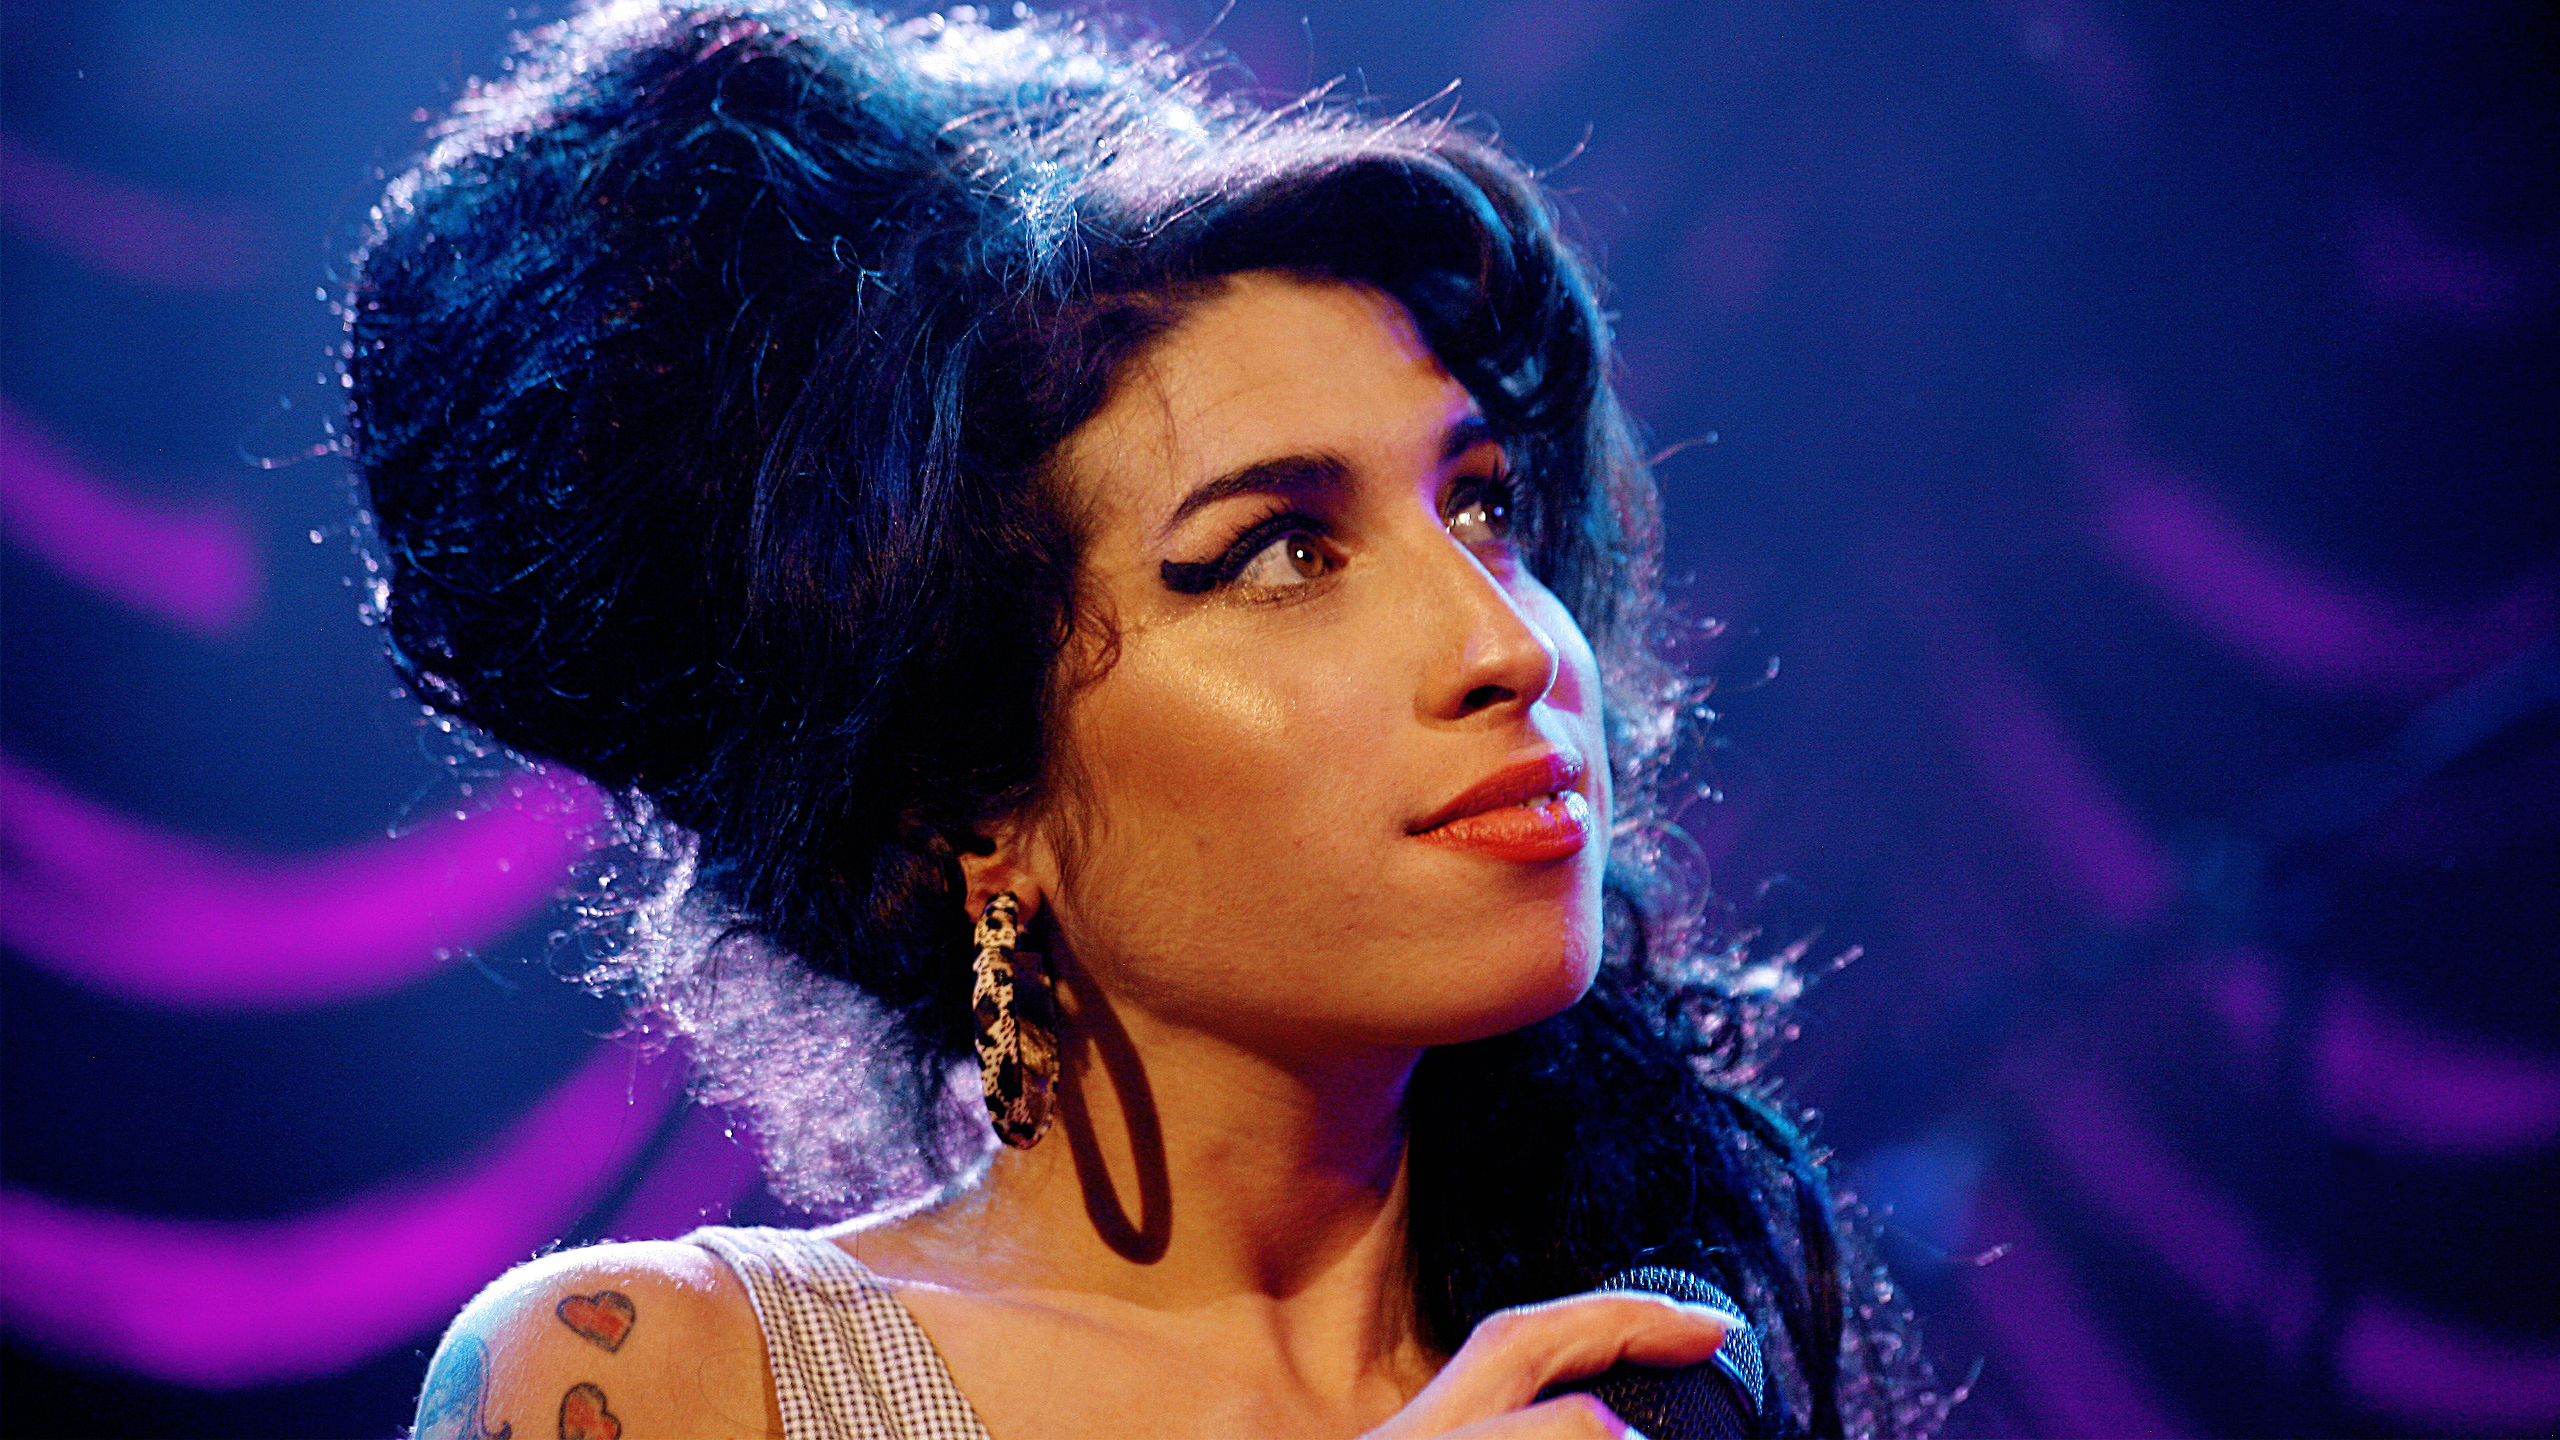 Amy Winehouse Hd Wallpaper Background Image 2560x1440 Wallpaper Abyss